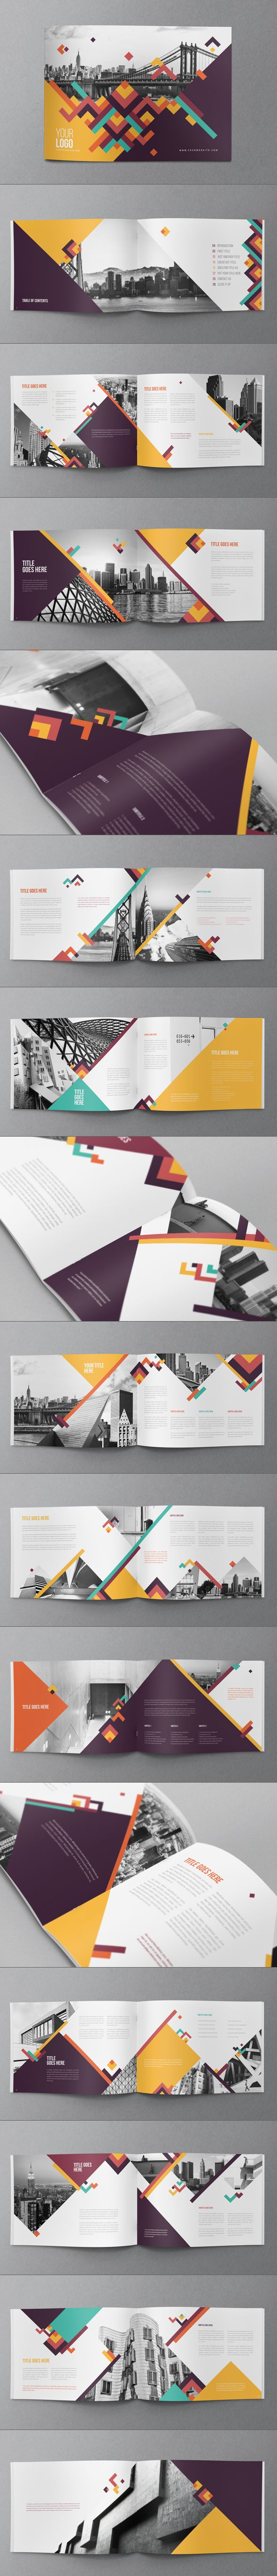 Colorful Pattern Brochure. Download here: http://graphicriver.net/item/colorful-pattern-brochure/7999677?ref=abradesign #design #brochure